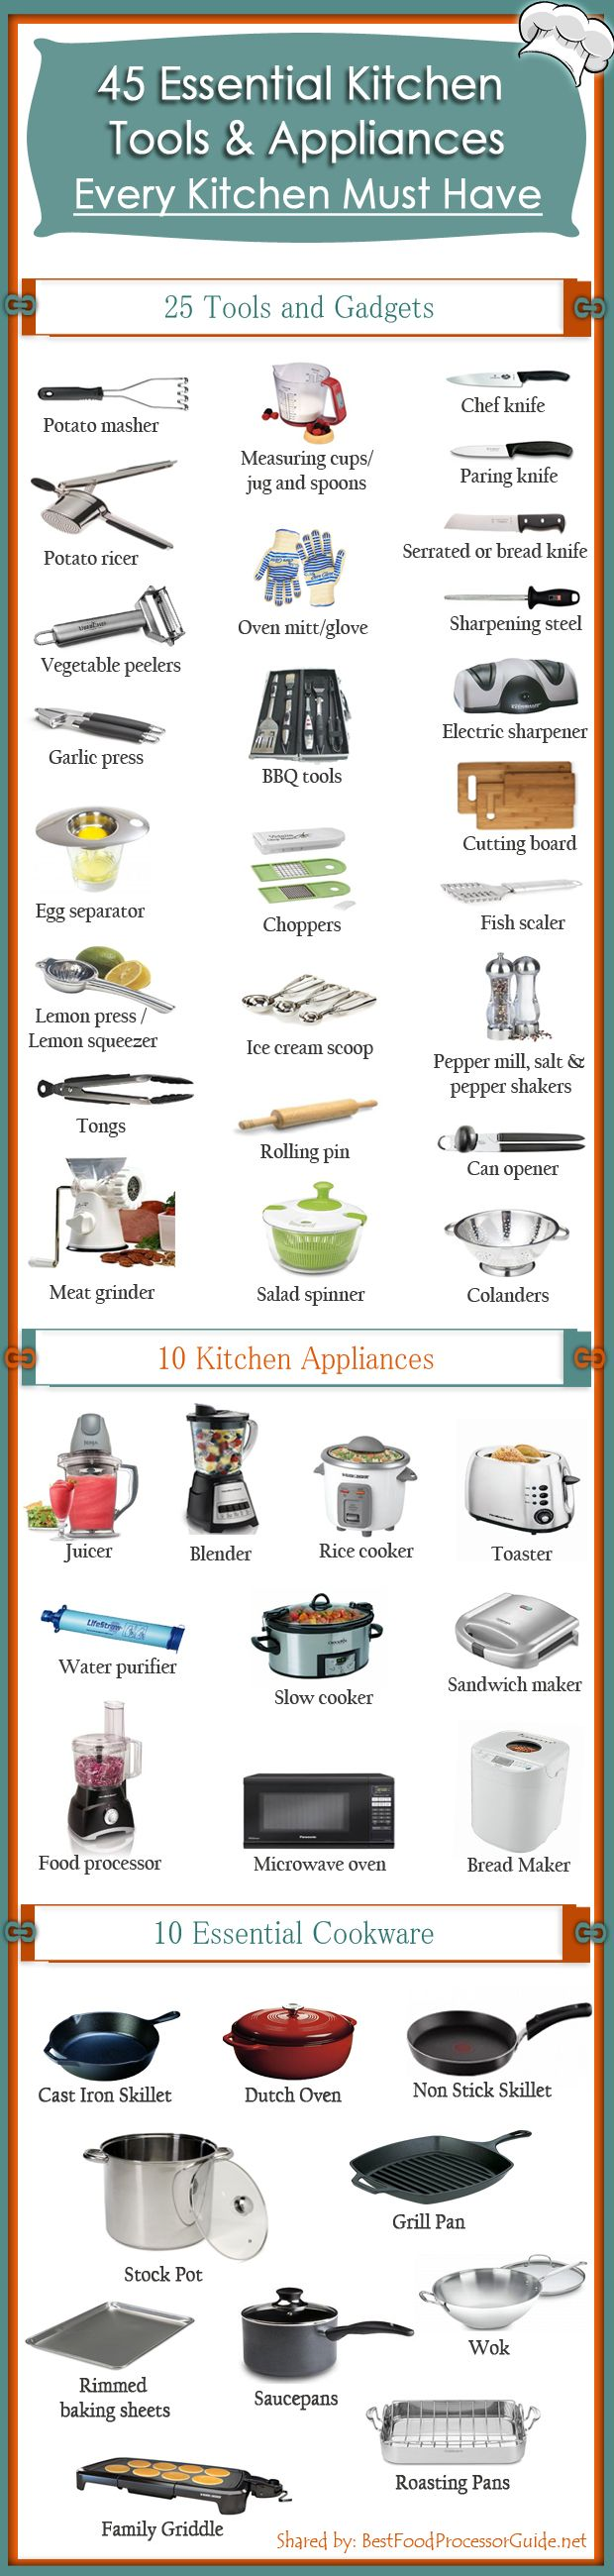 45 Essential Kitchen Tools Appliances infographic